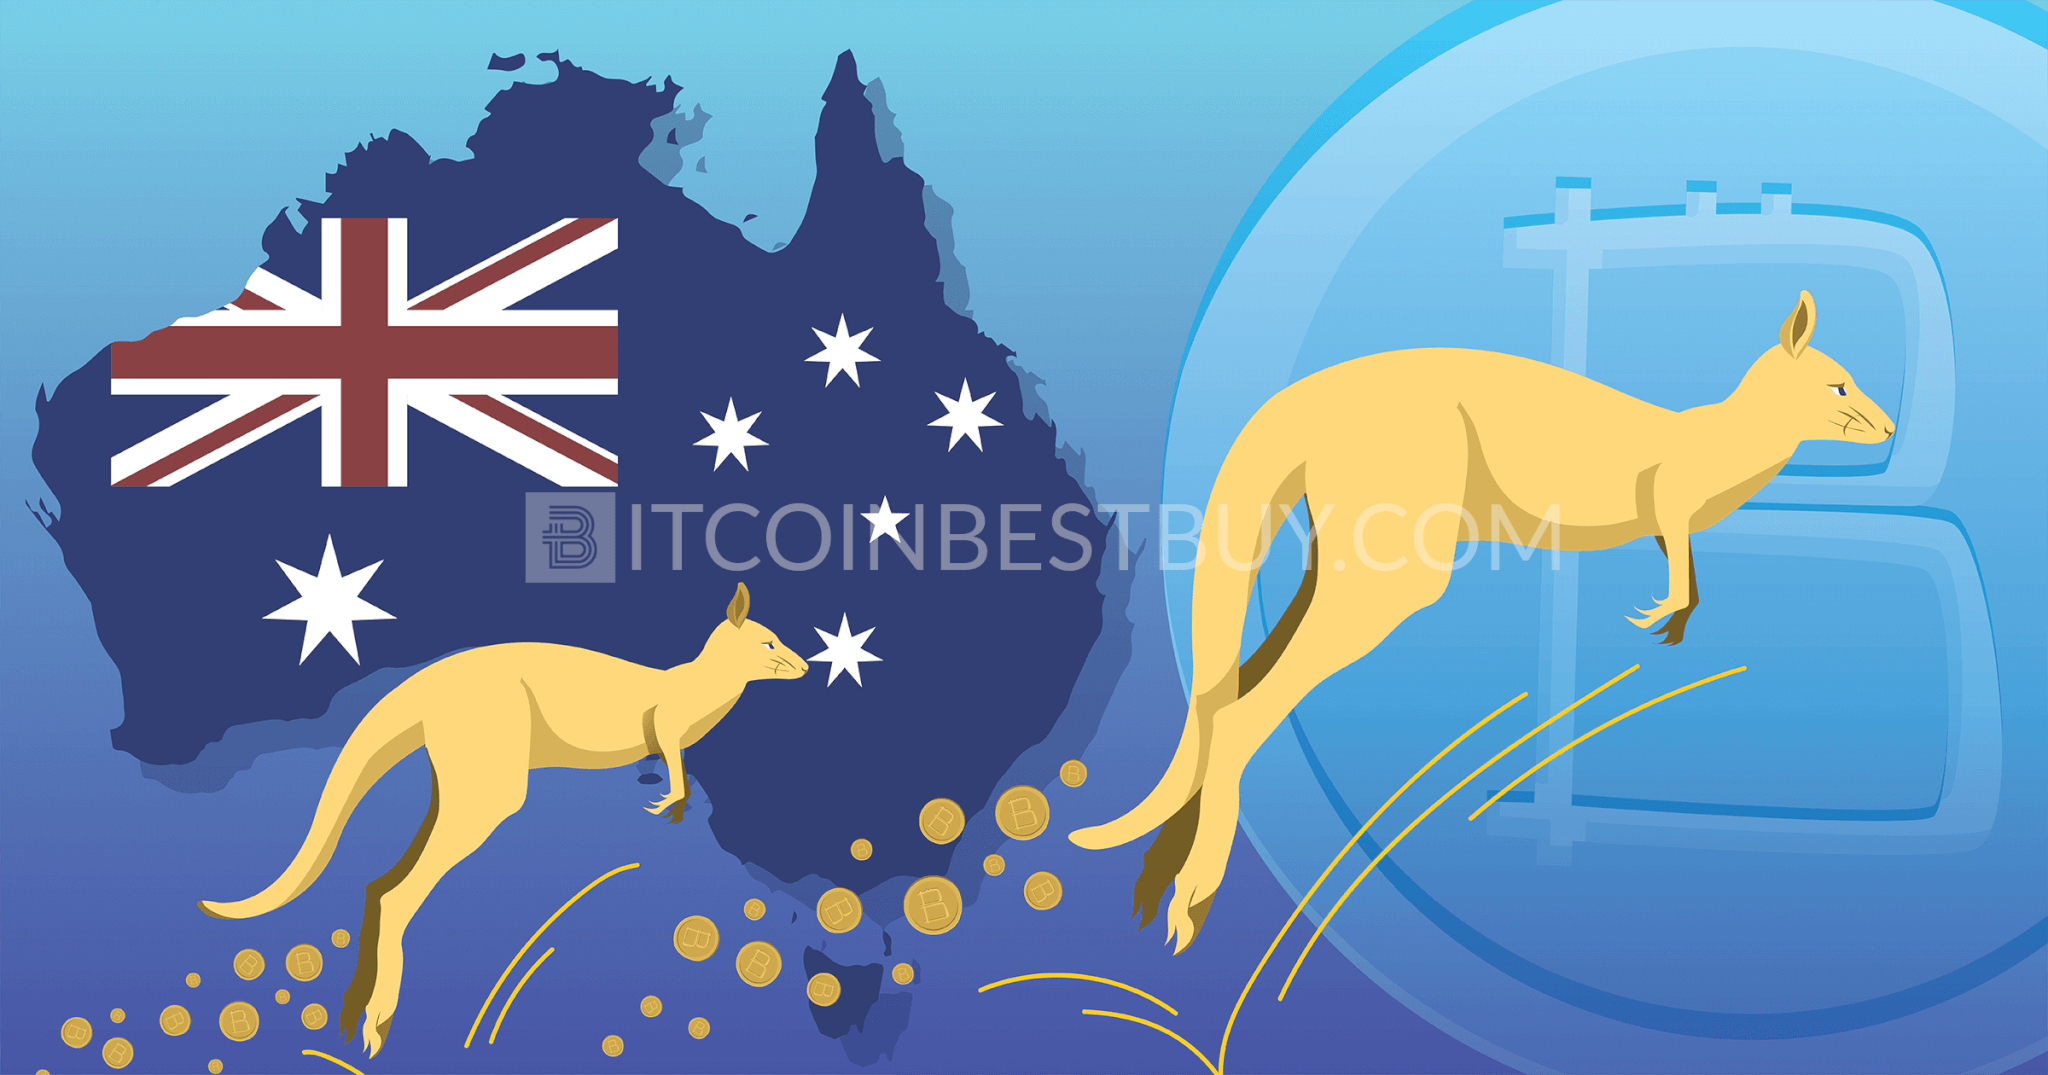 How to buy bitcoin in australia exchanges reviews and faq bitcoins from exchanges if you live in australia and new zealand with the most popular options being cash credit debit cards bank transfers ccuart Image collections